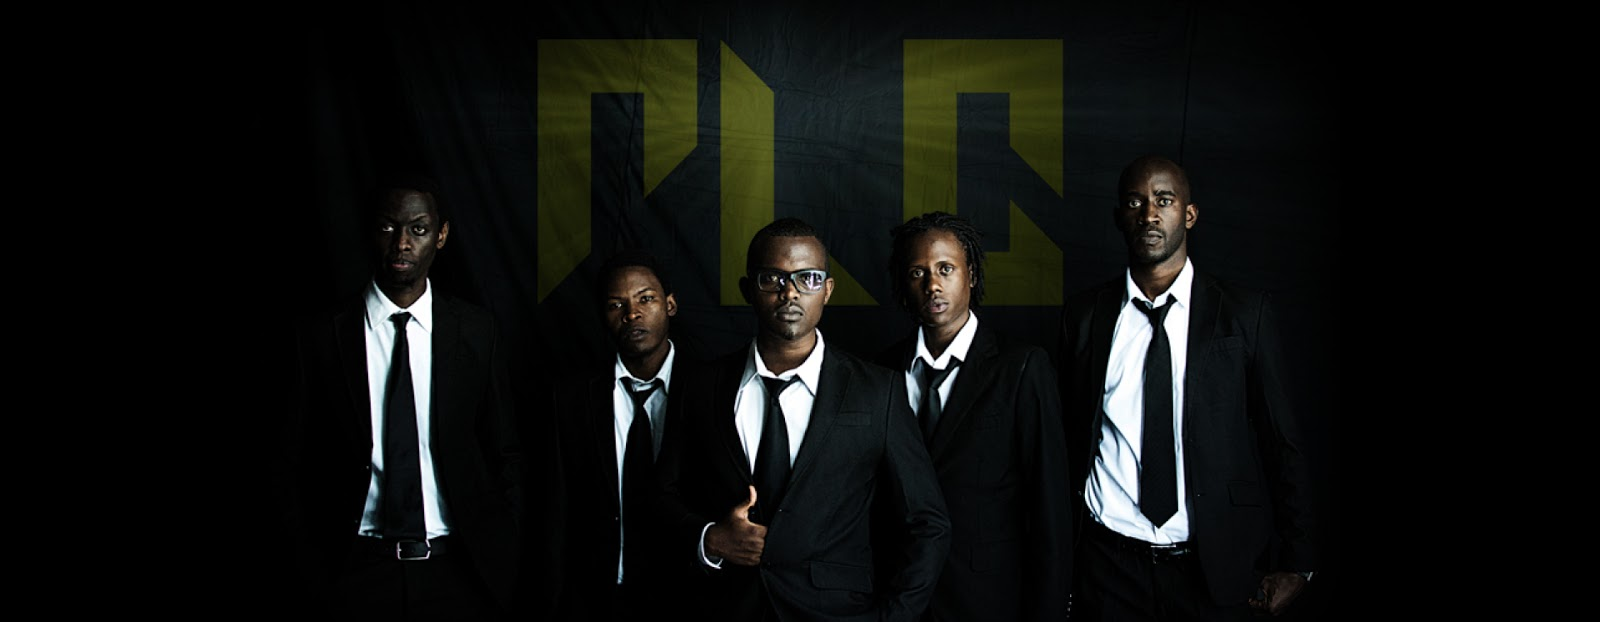 Kenyan Rock Bands You Should Check Out